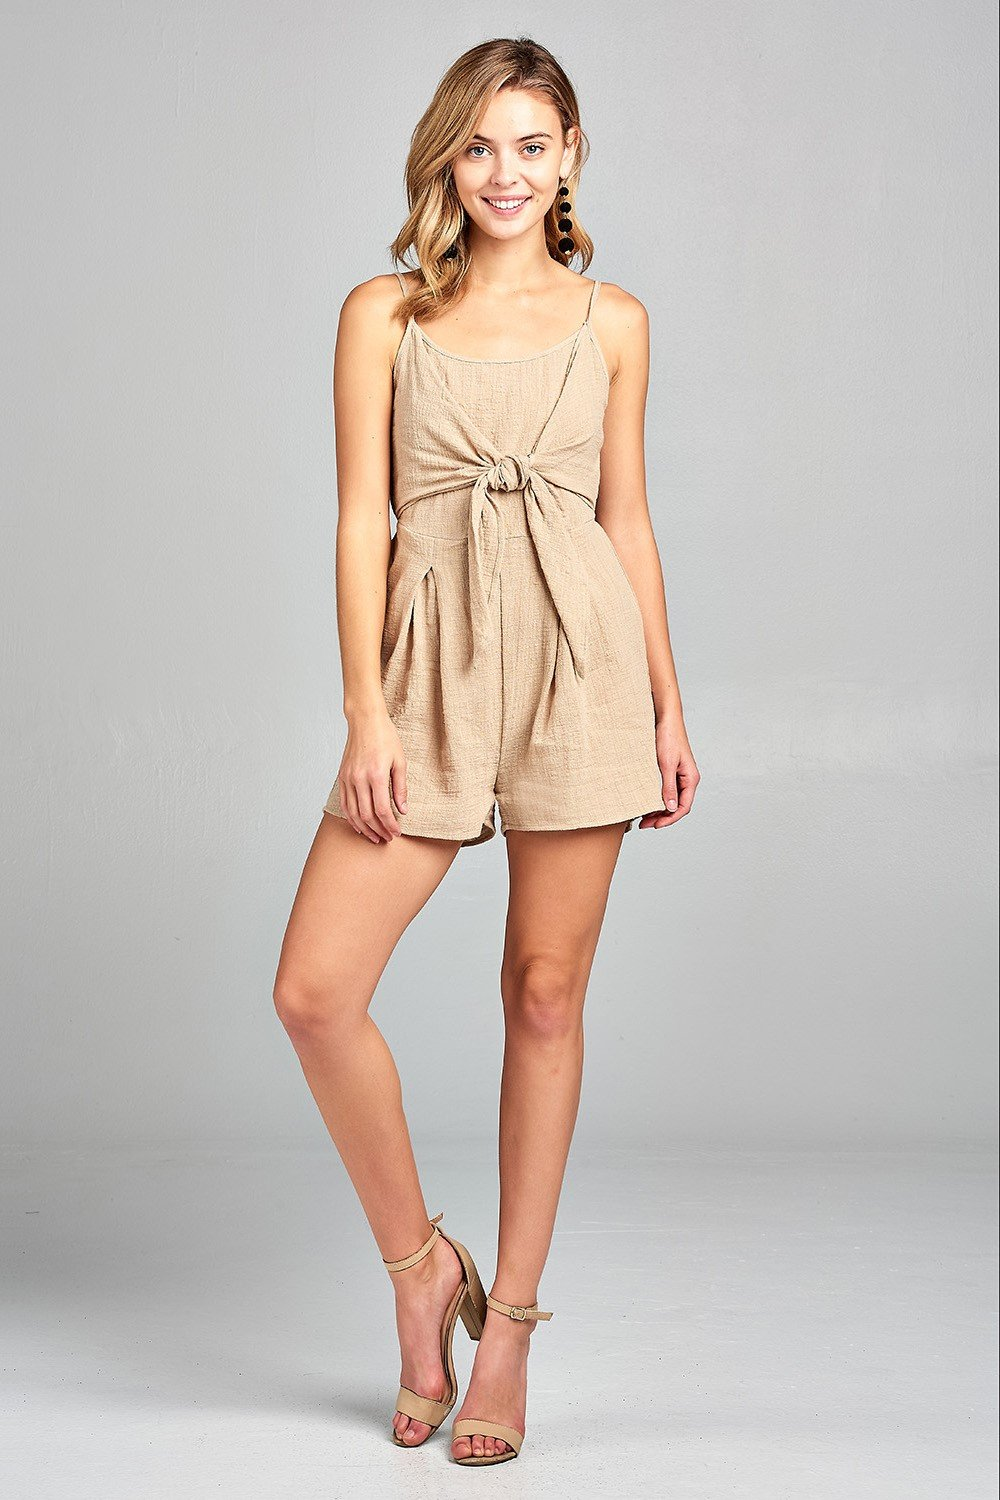 Women's Front Tie Tank Romper with Open back - Tiny Town Essentials